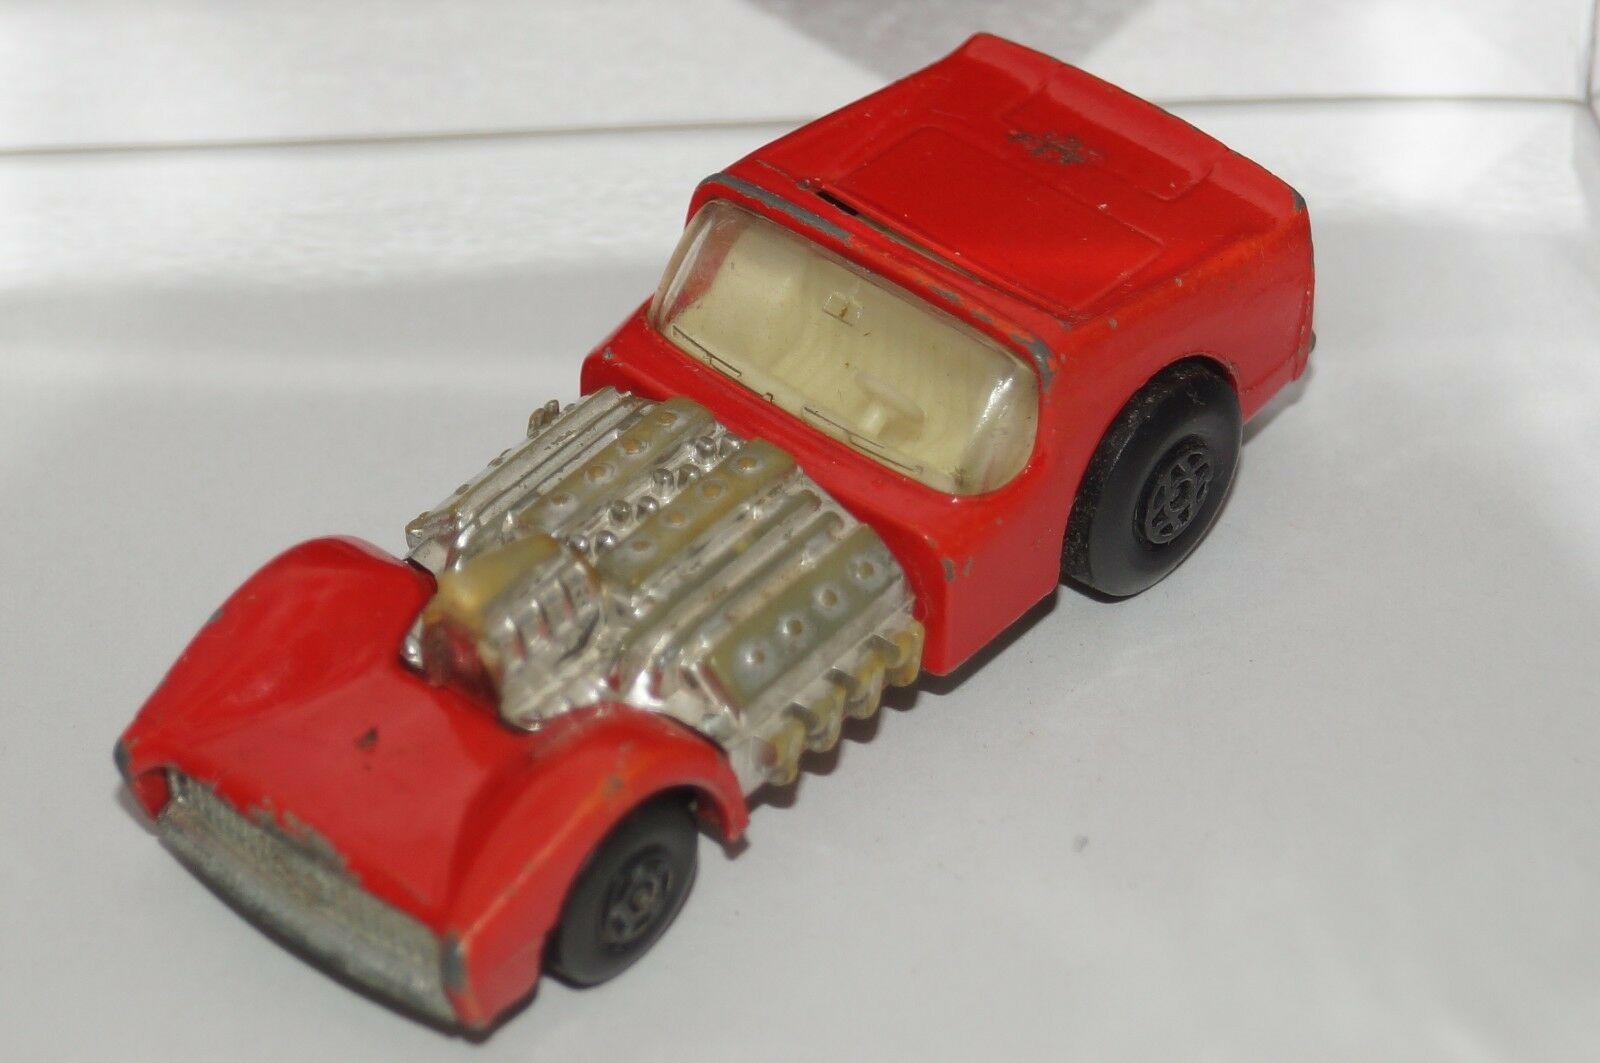 Original Matchbox Superfast Road Dragster-no 19-Coloree rosso-Motor de cromo